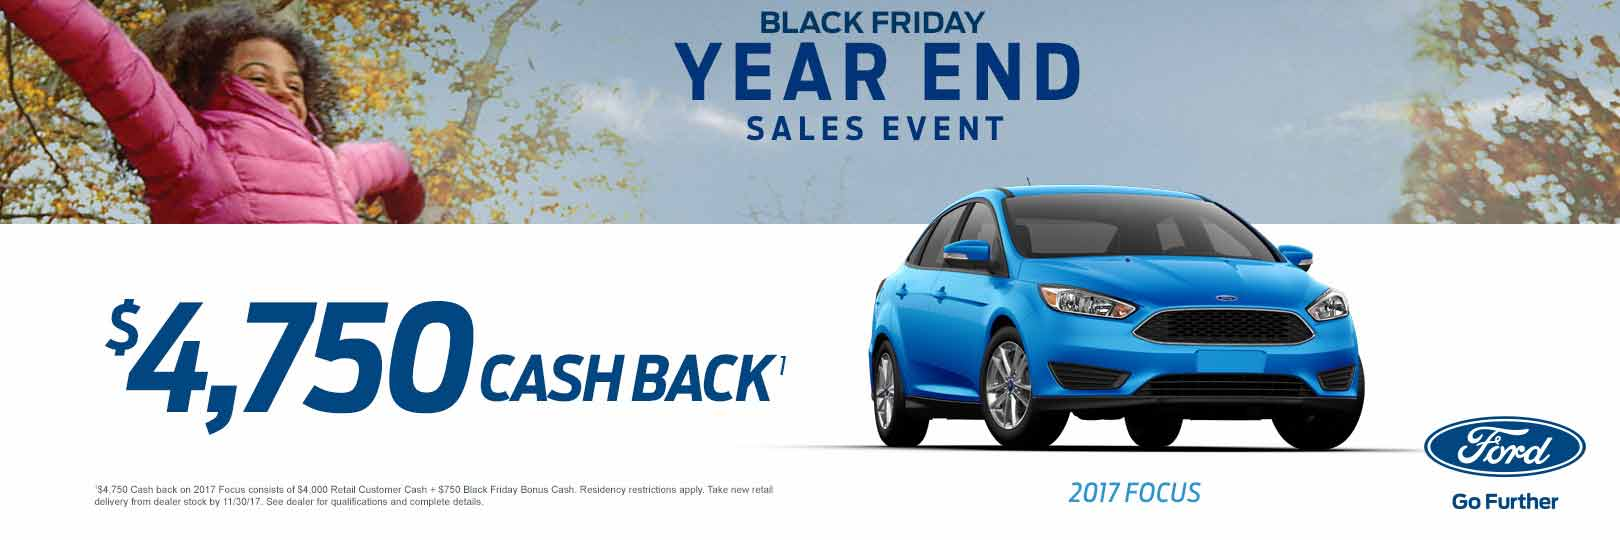 Ray Price Stroud Ford Lincoln New Lincoln Ford Dealership In